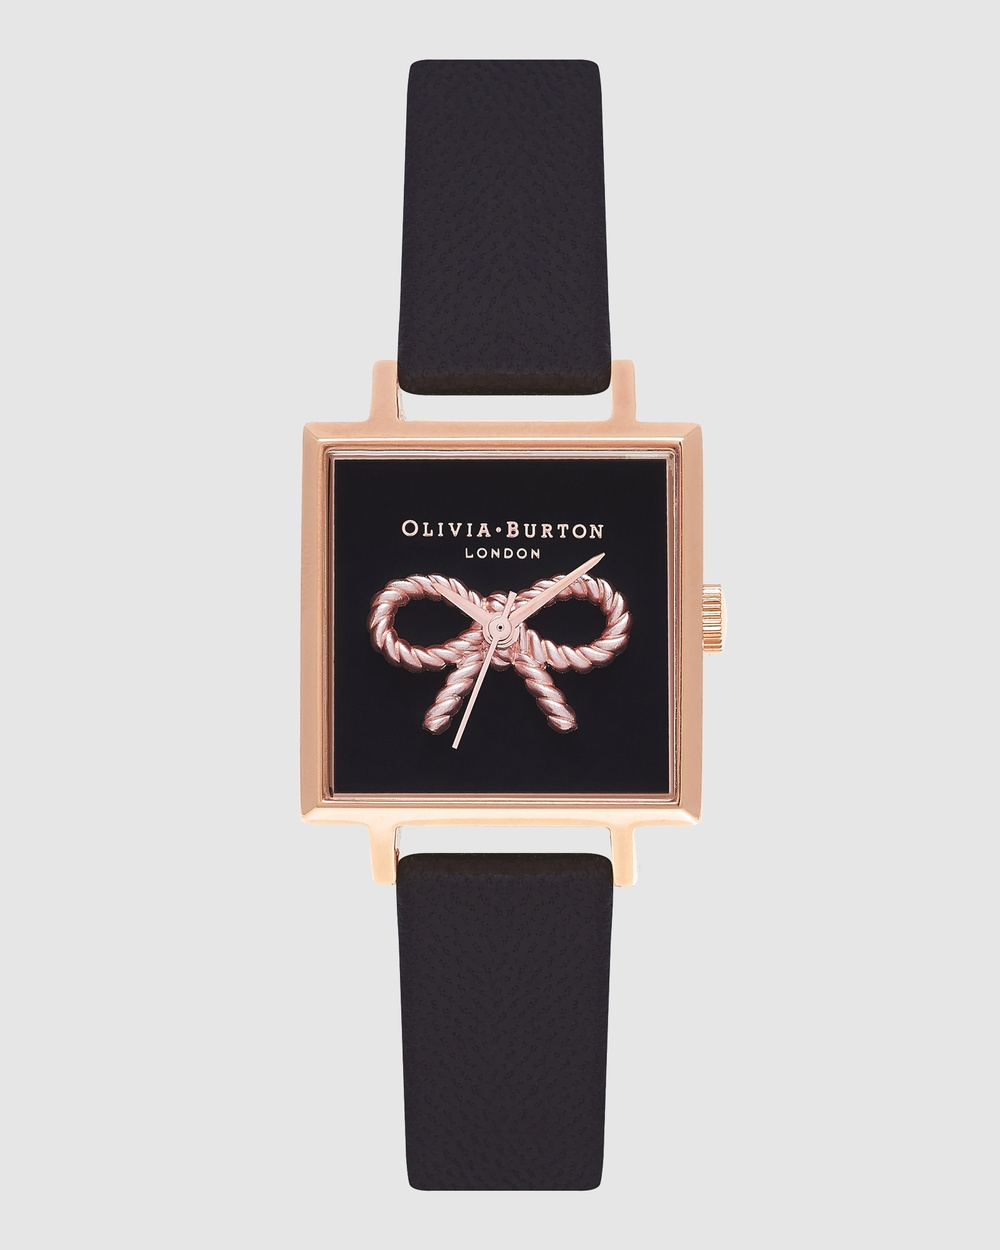 Olivia Burton Vintage Bow Watches Gold with Black Strap